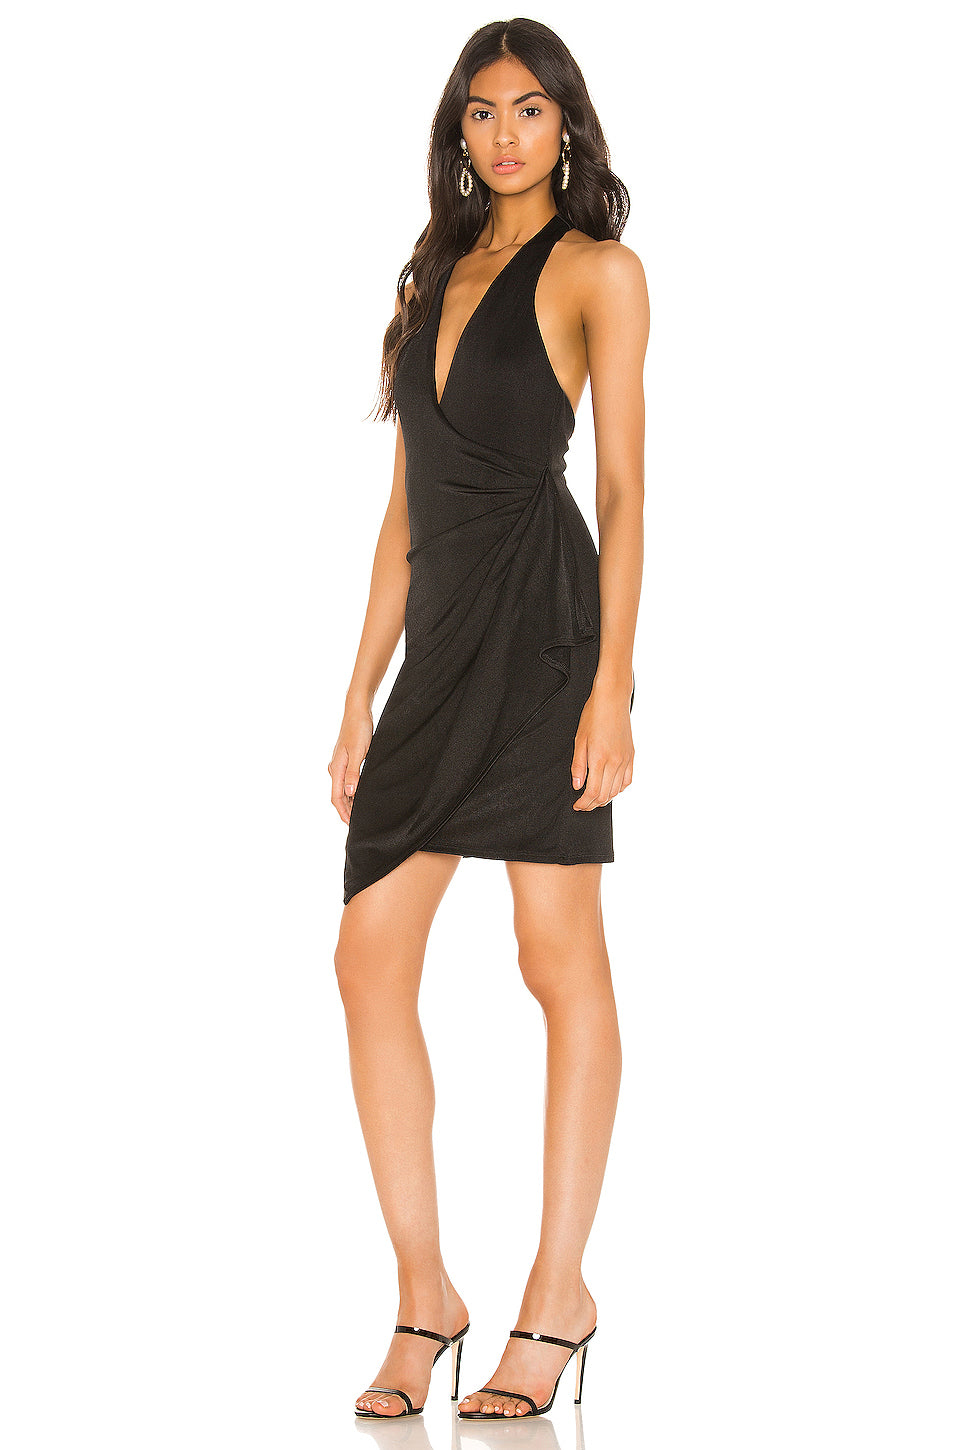 Marx Halter Neck Mini Dress-Dresses-Alice + Olivia-Max & Riley